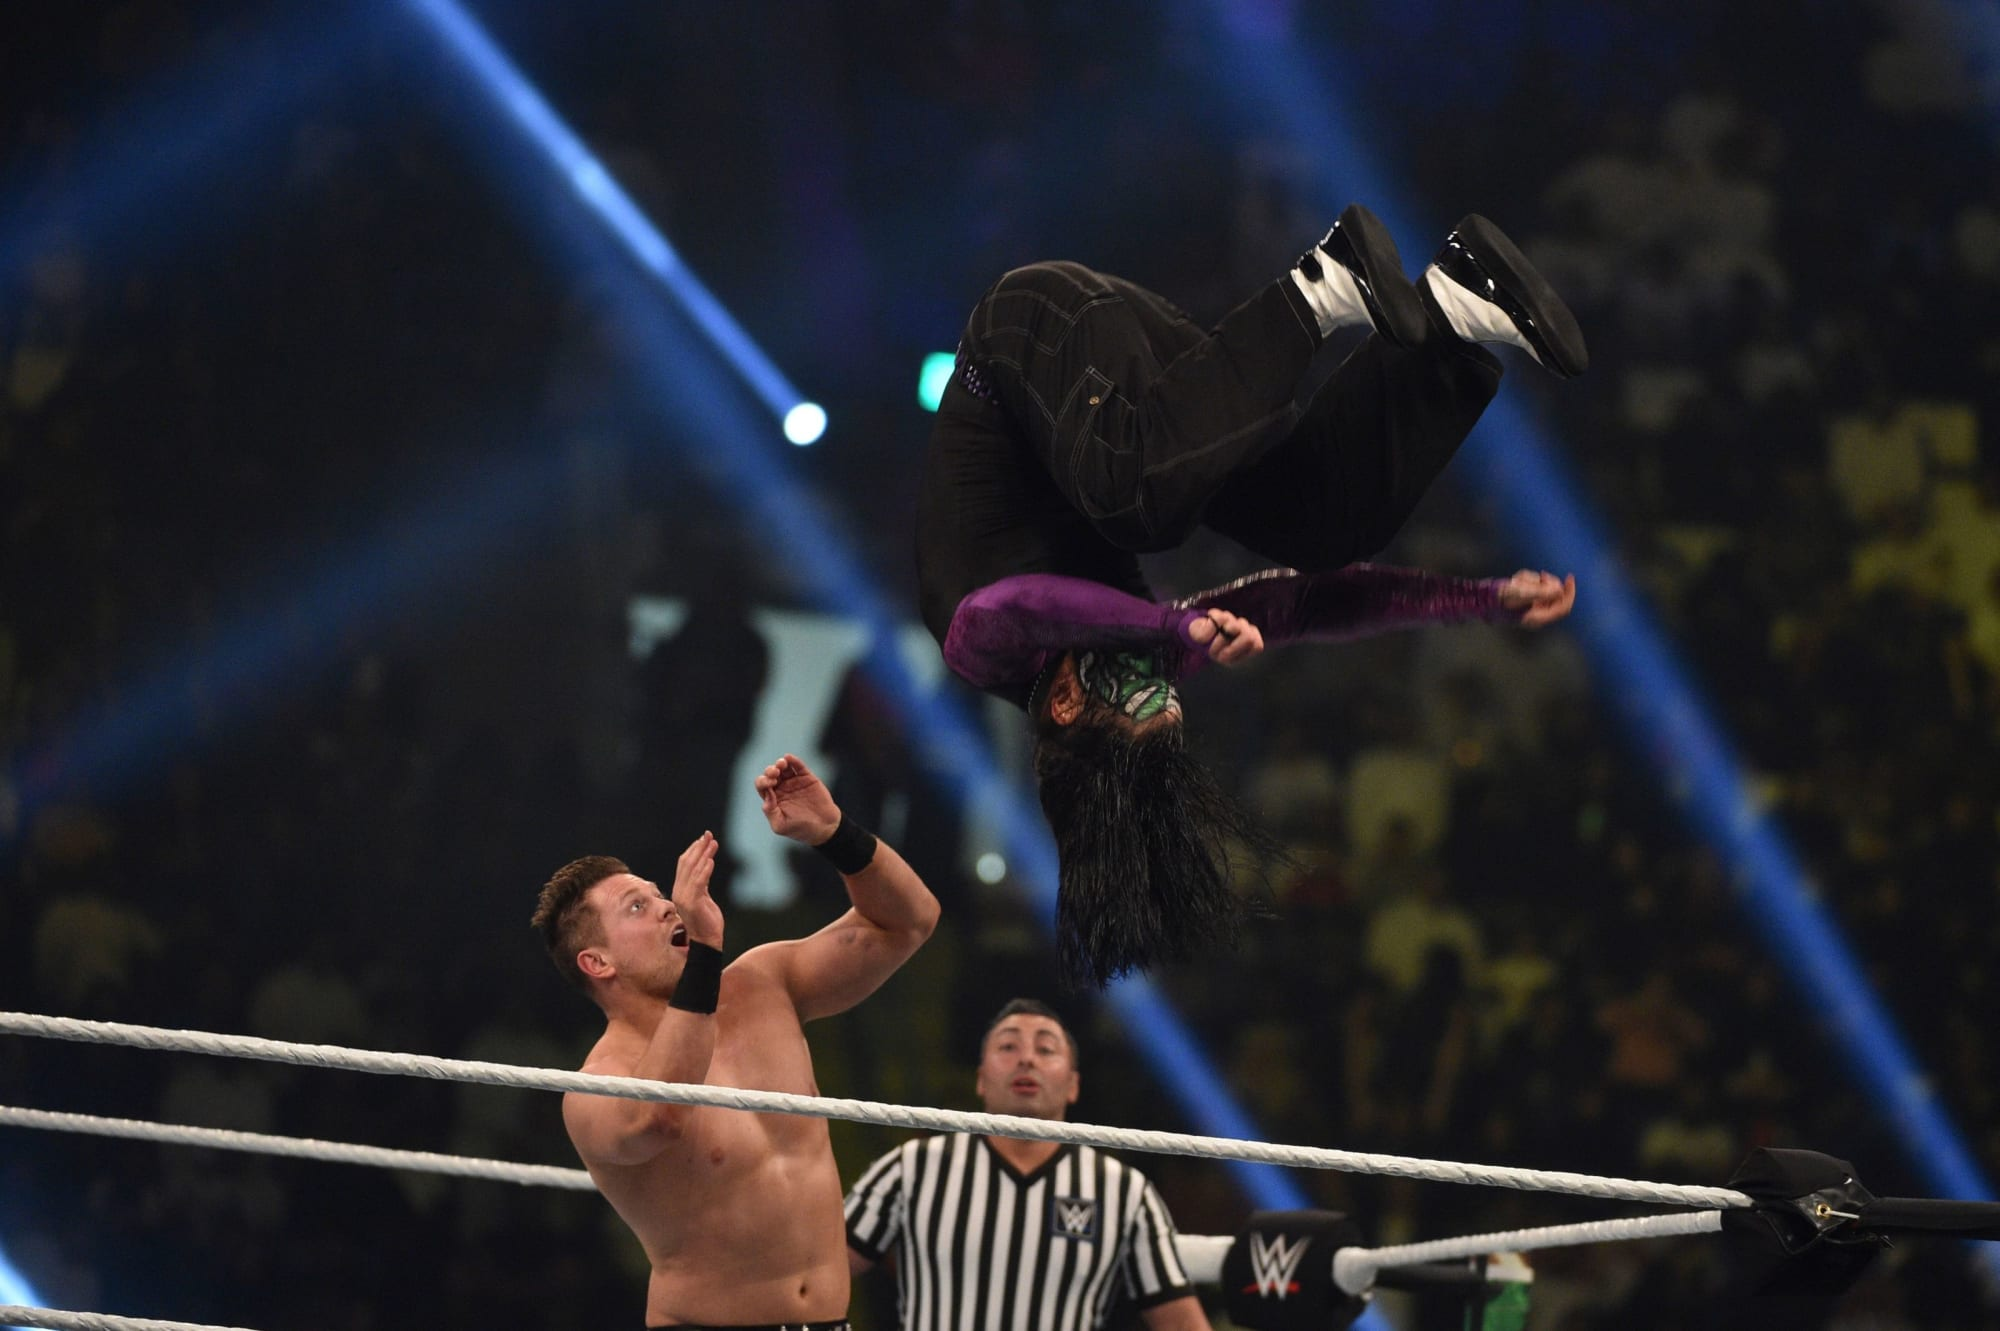 The Miz plans to wire Bad Bunny's mouth shut at Wrestlemania 37